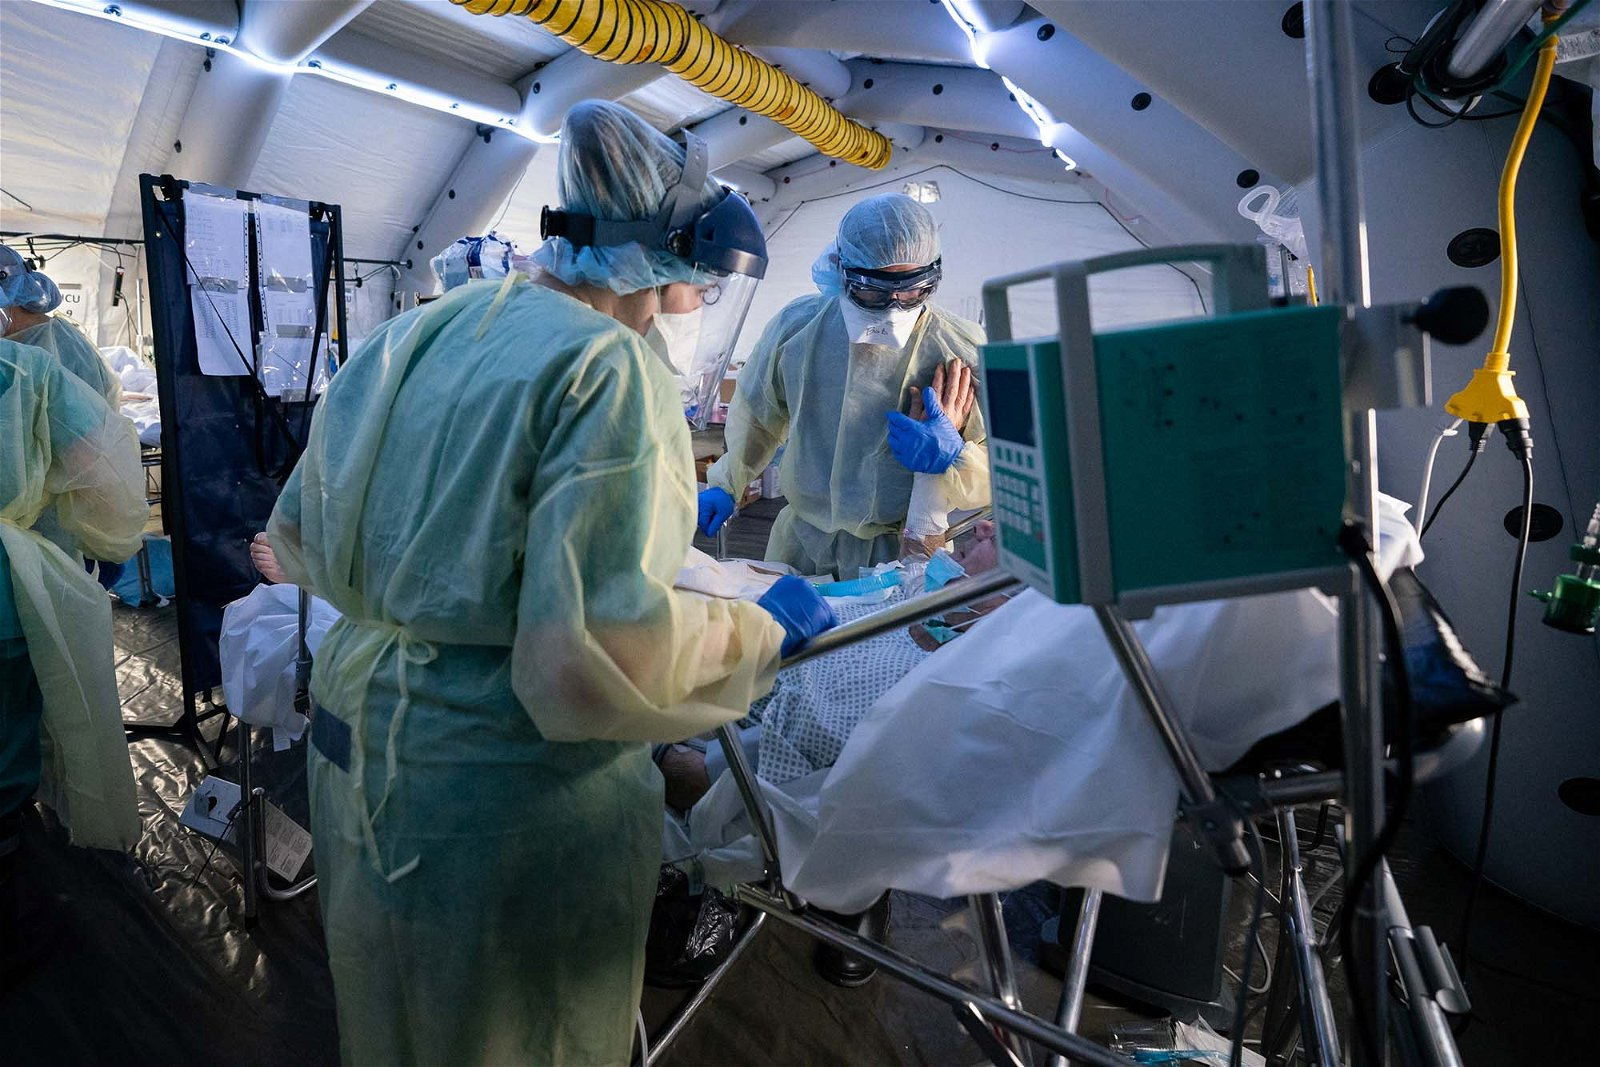 Dr. Bob, right, speaks with and comforts an improving patient in the ICU at the SP field hospital for coronavirus patients in Cremona, Italy.